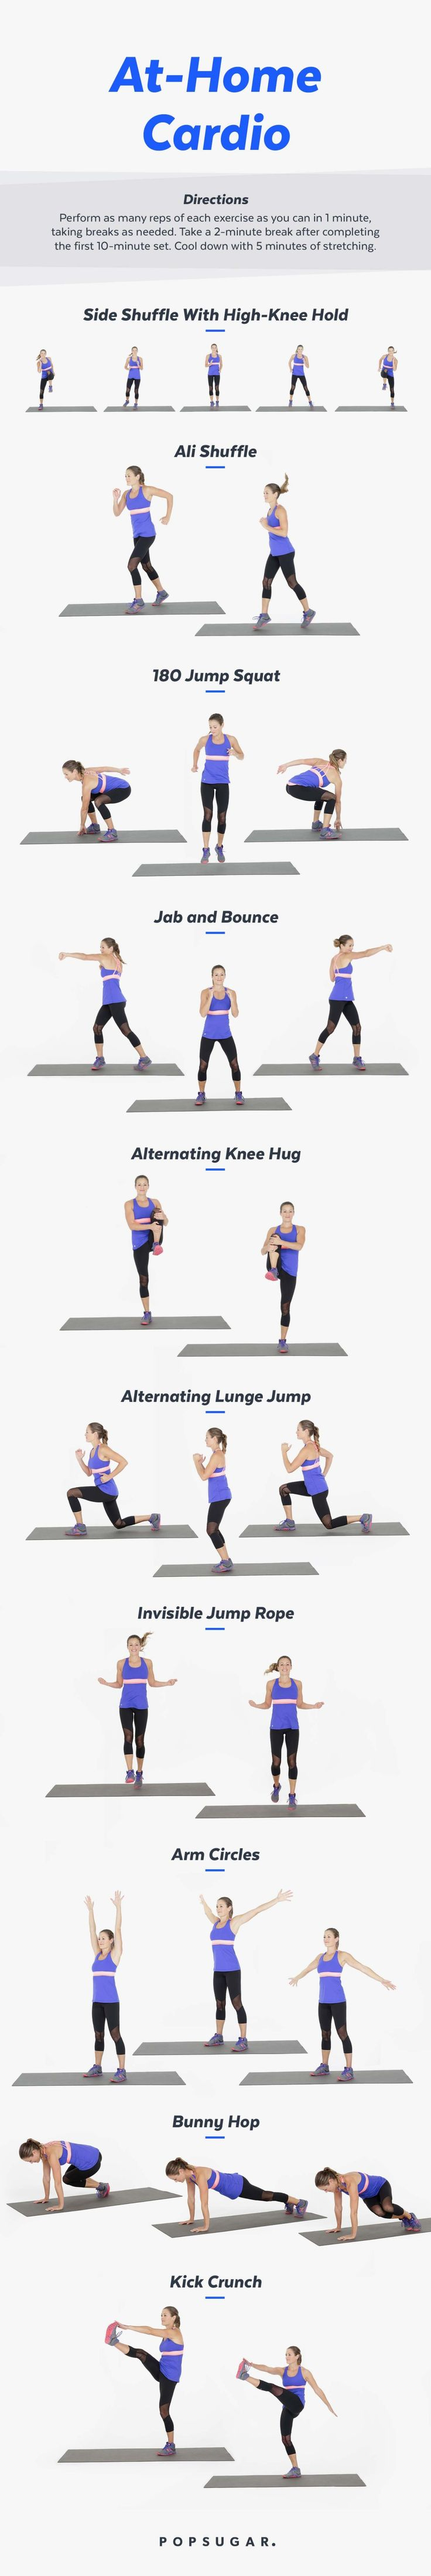 25 Best Ideas About Living Room Workout On Pinterest No Equipment Workout Body Weight